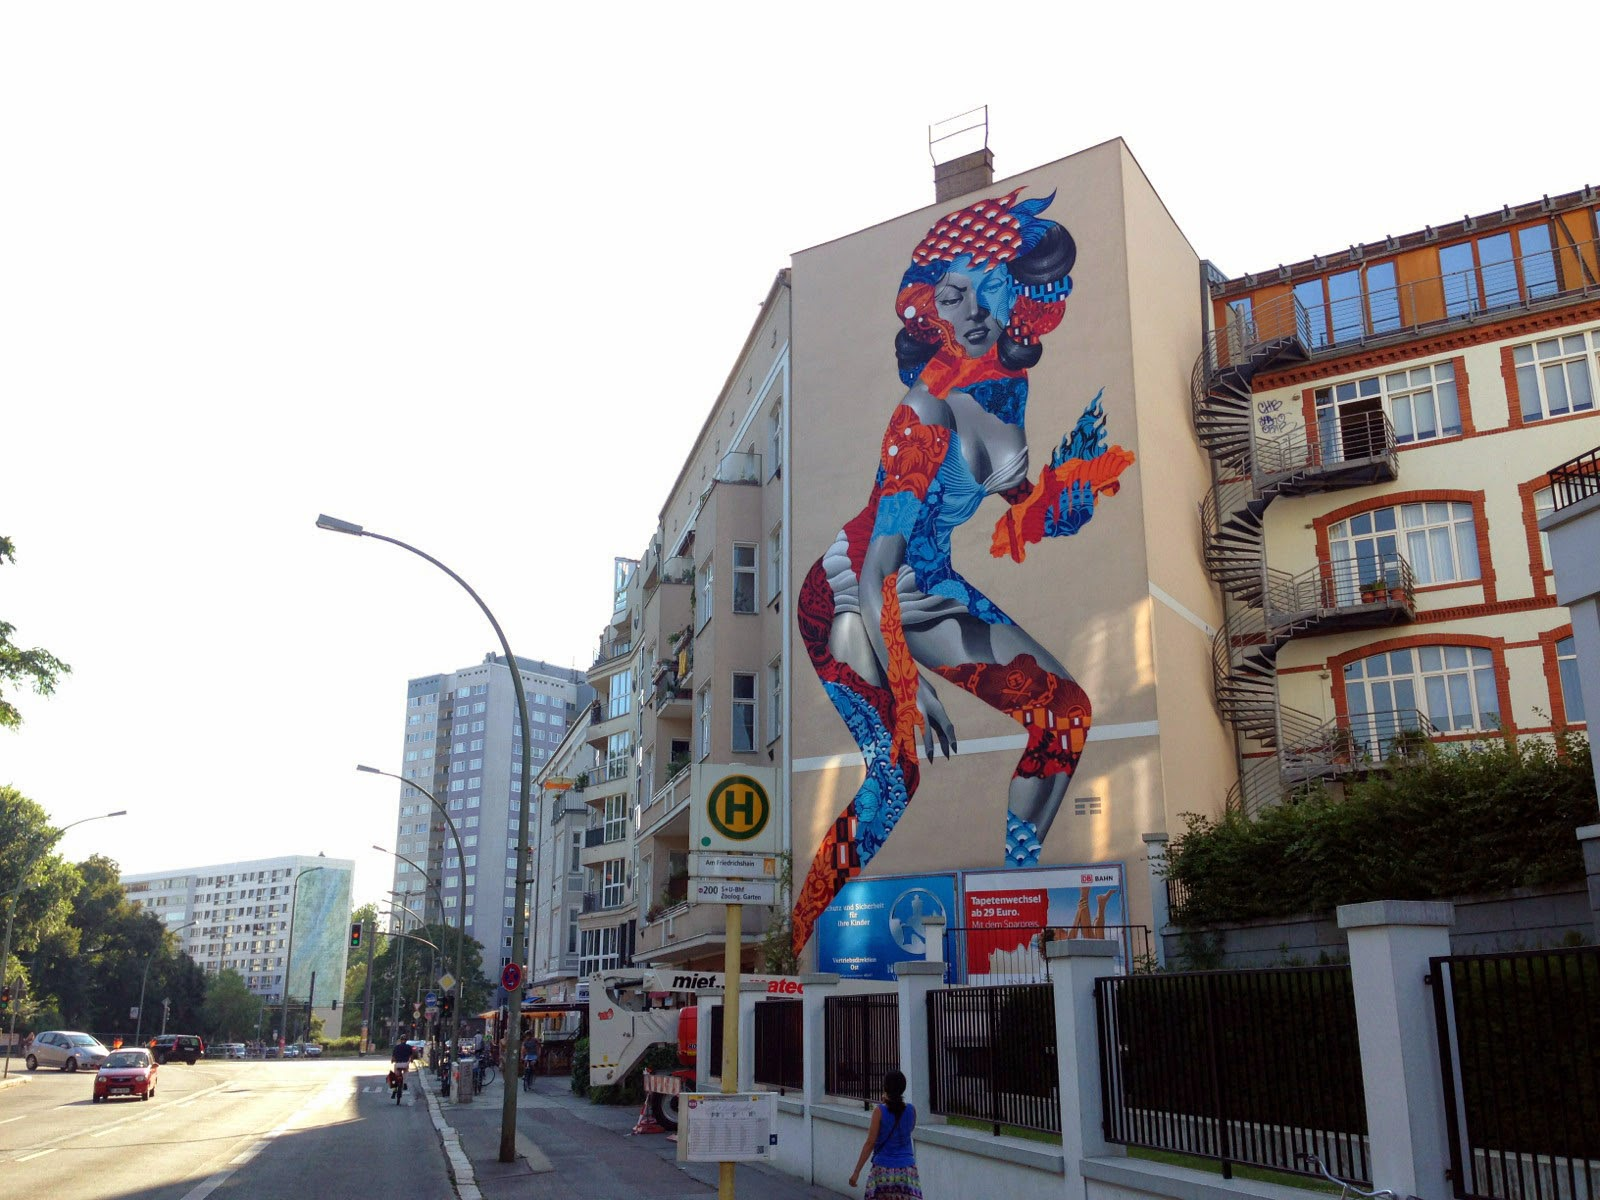 While you discovered some progress images a few days ago, Tristan Eaton has now completed his monster piece for the One Wall project by UrbanNation.